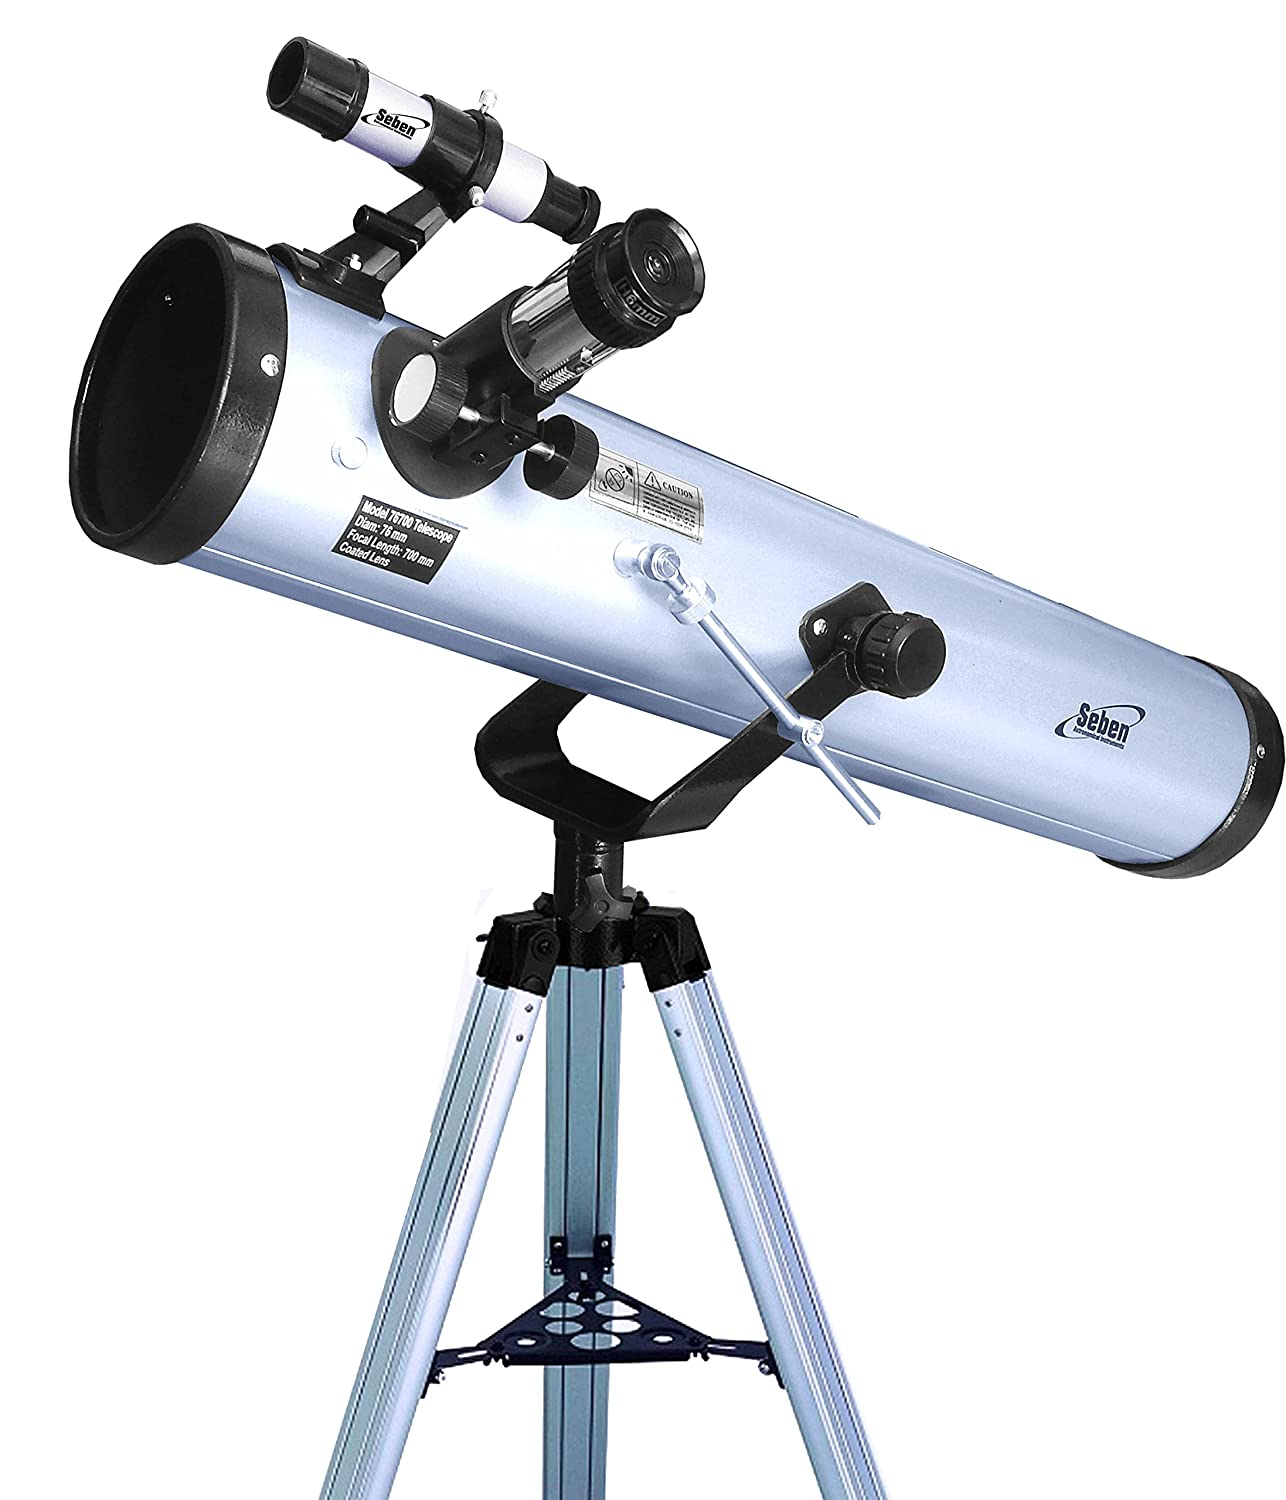 Seben 700-76 Telescopio riflettore con Big Pack incluso